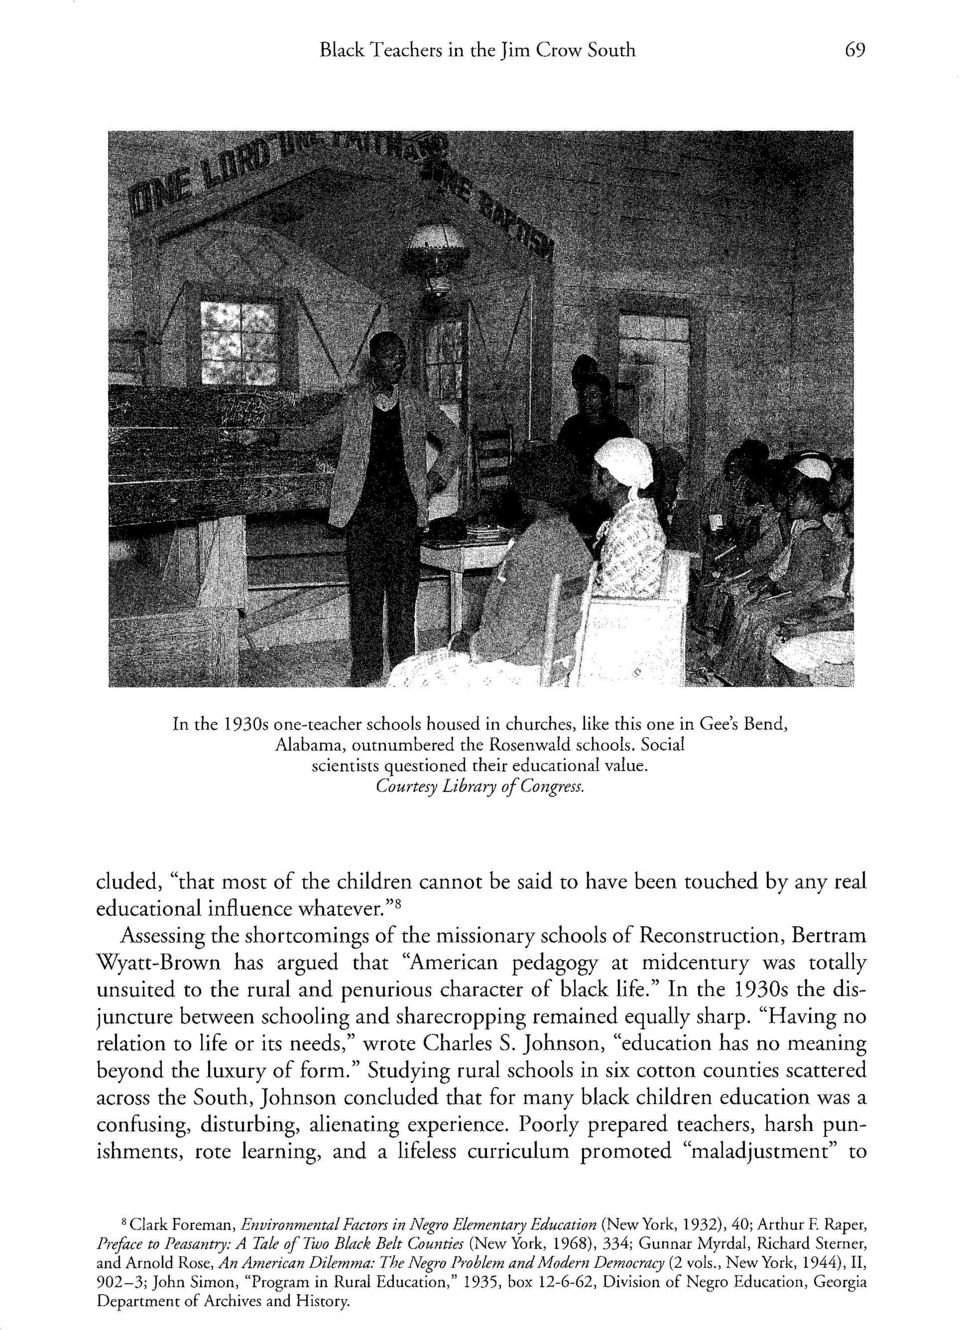 """^ Assessing the shortcomings of the missionary schools of Reconstruction, Bertram Wyatt-Brown has argued that ""American pedagogy at midcentury was totally unsuited to the rural and penurious"